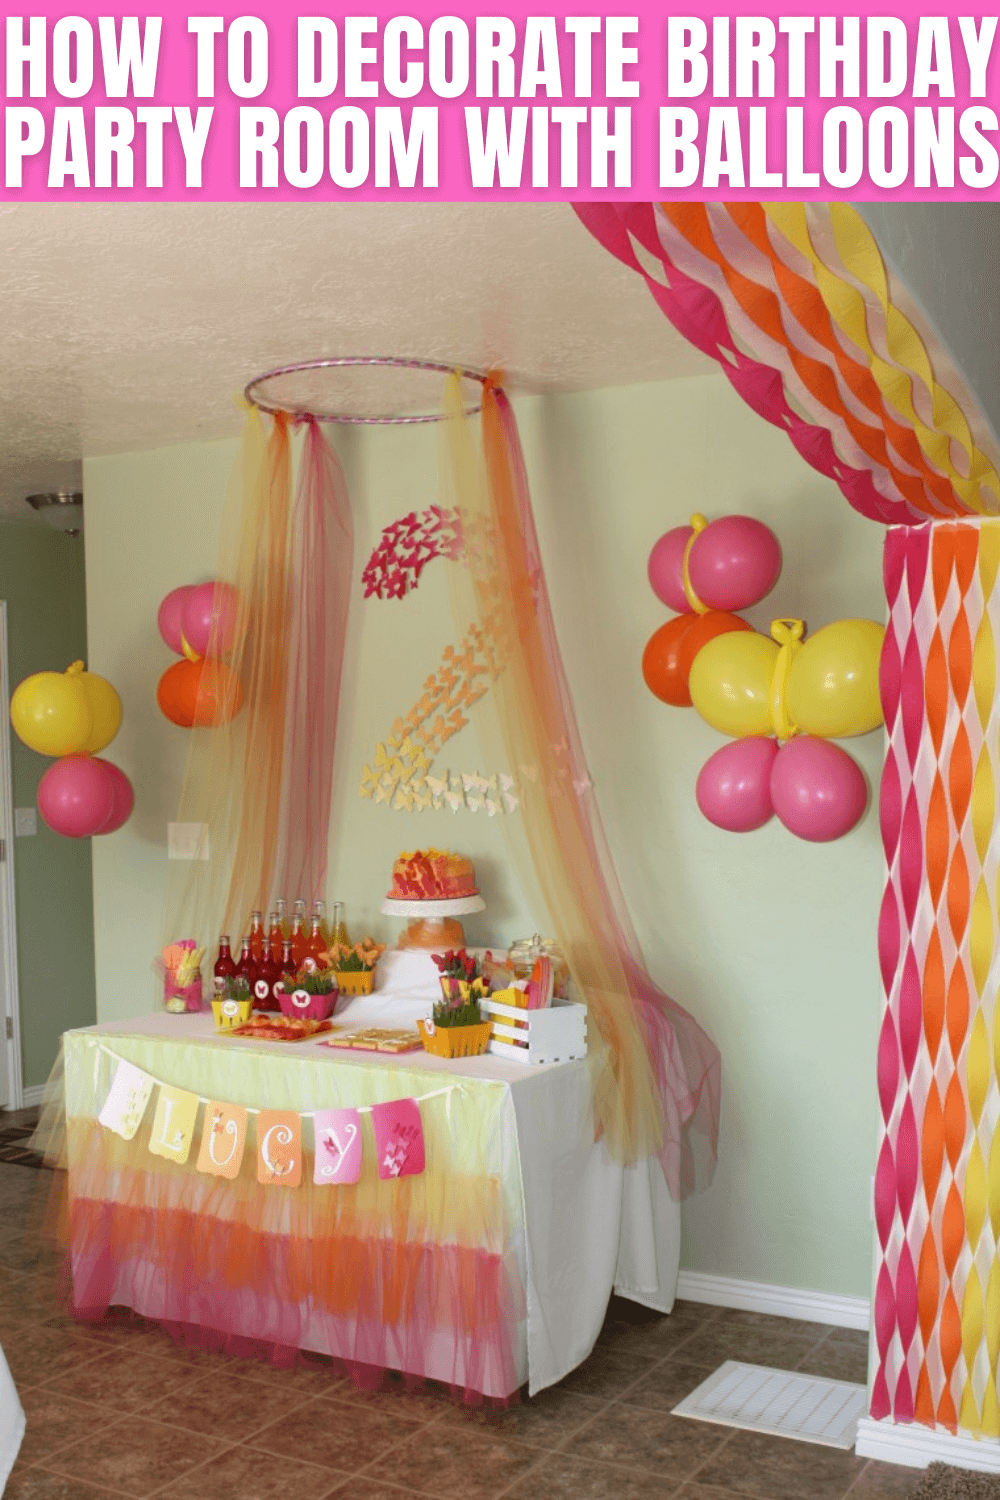 HOW TO DECORATE BIRTHDAY PARTY ROOM WITH BALLOONS